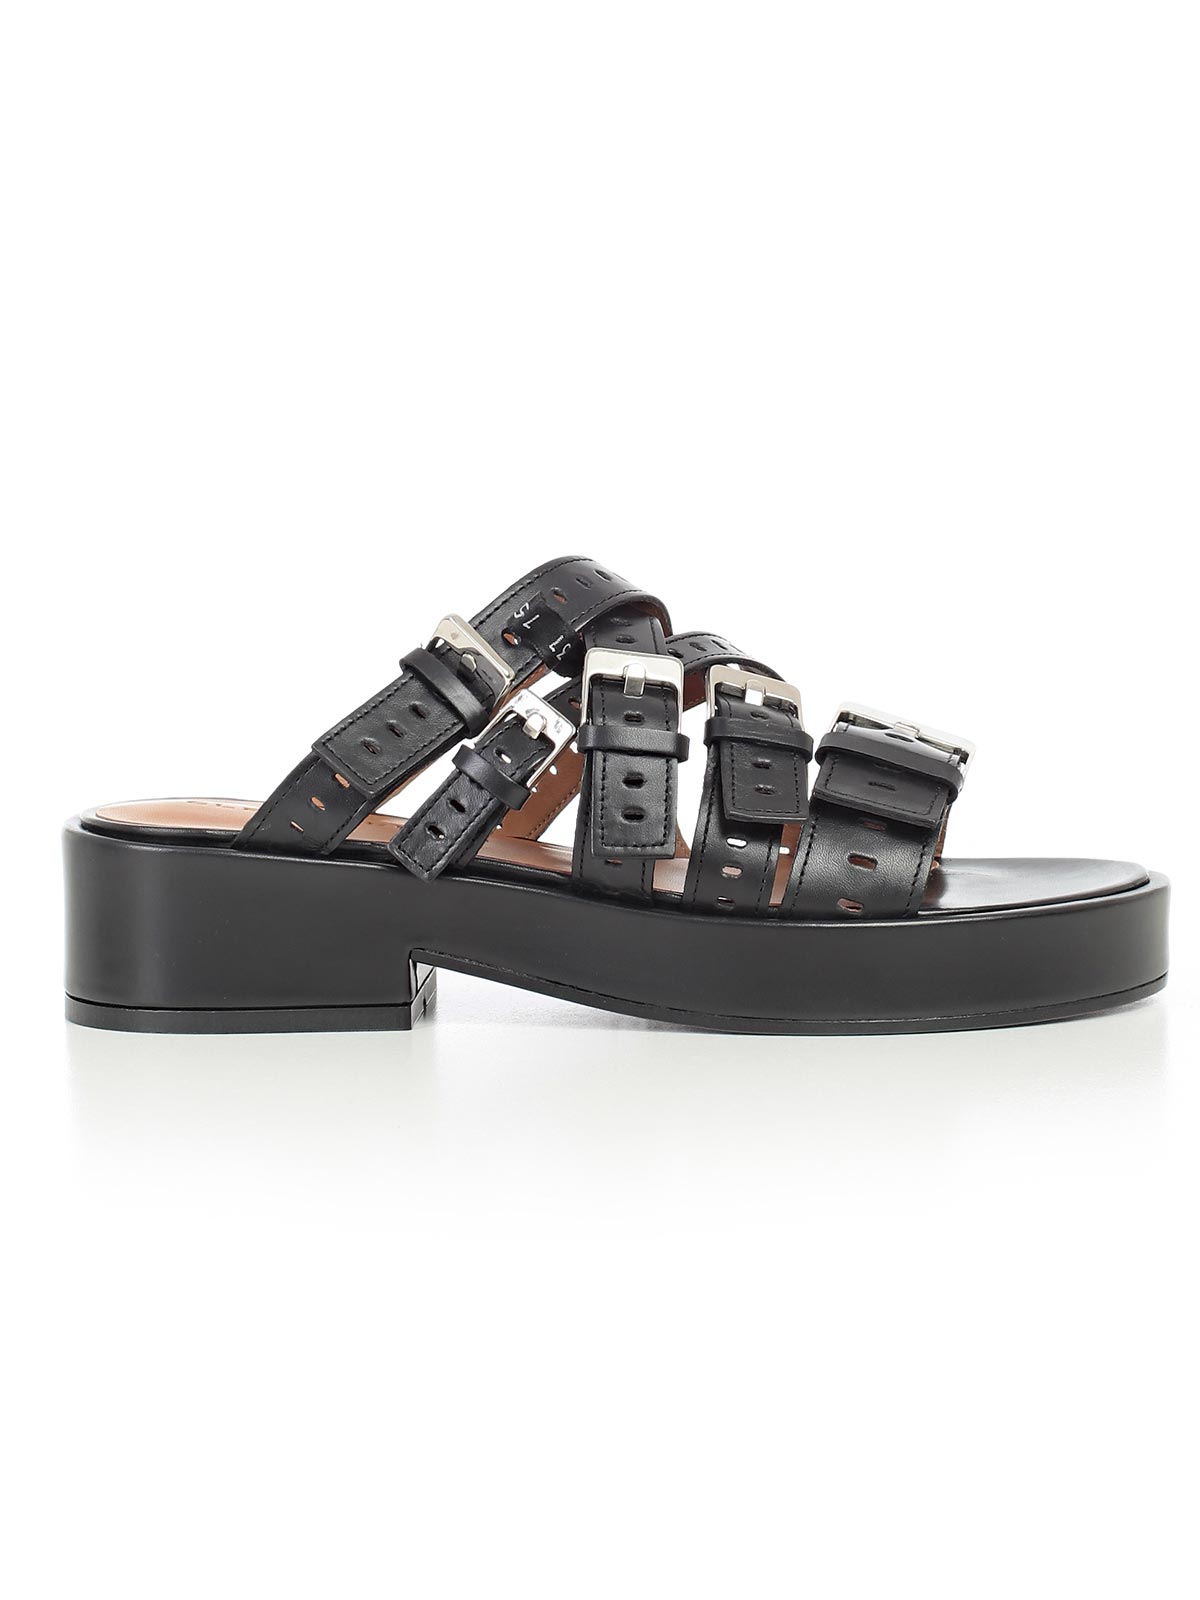 Picture of Robert Clergerie Sandals